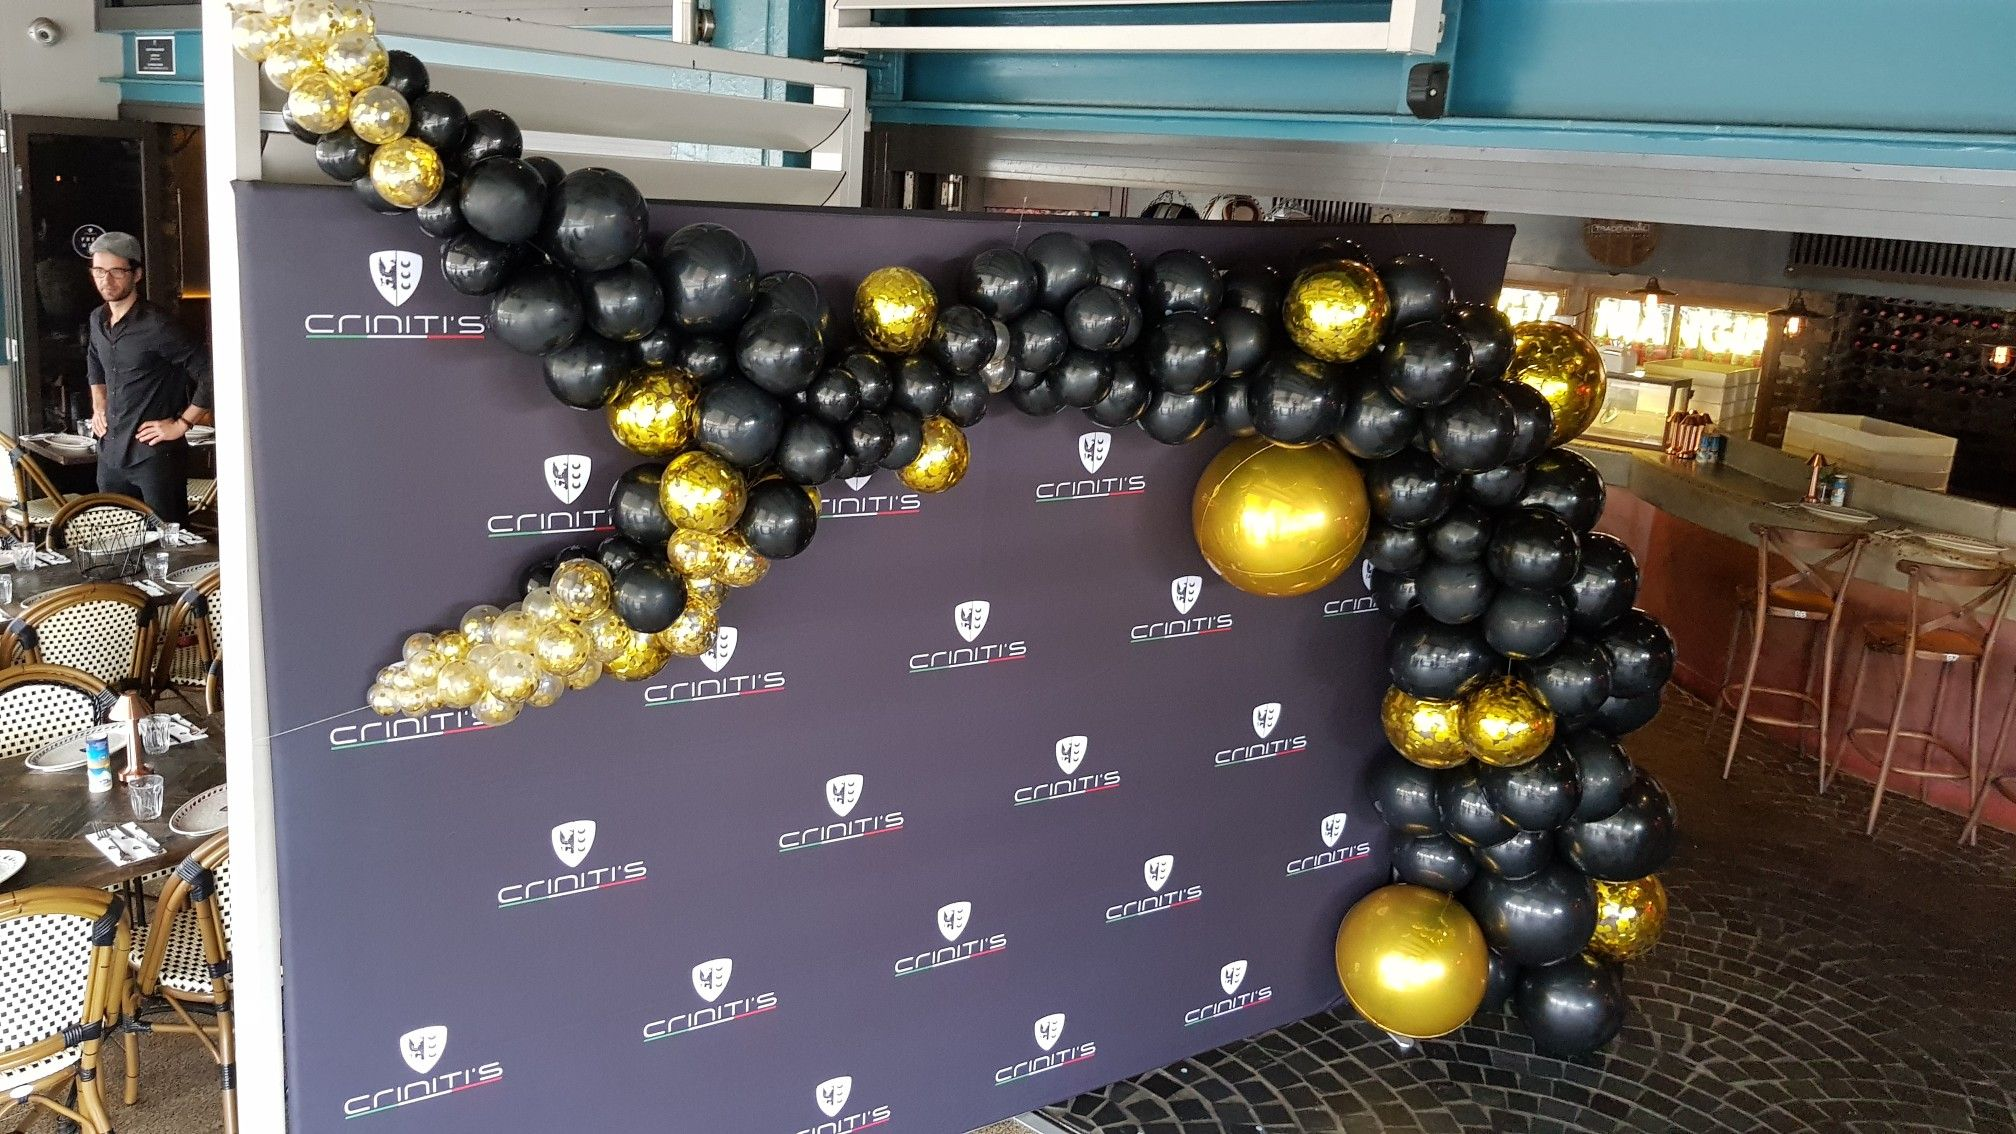 Cute Black And Gold Organic Arch Softening The Edges Of This Media Wall Balloon Design Balloon Decorations Balloons